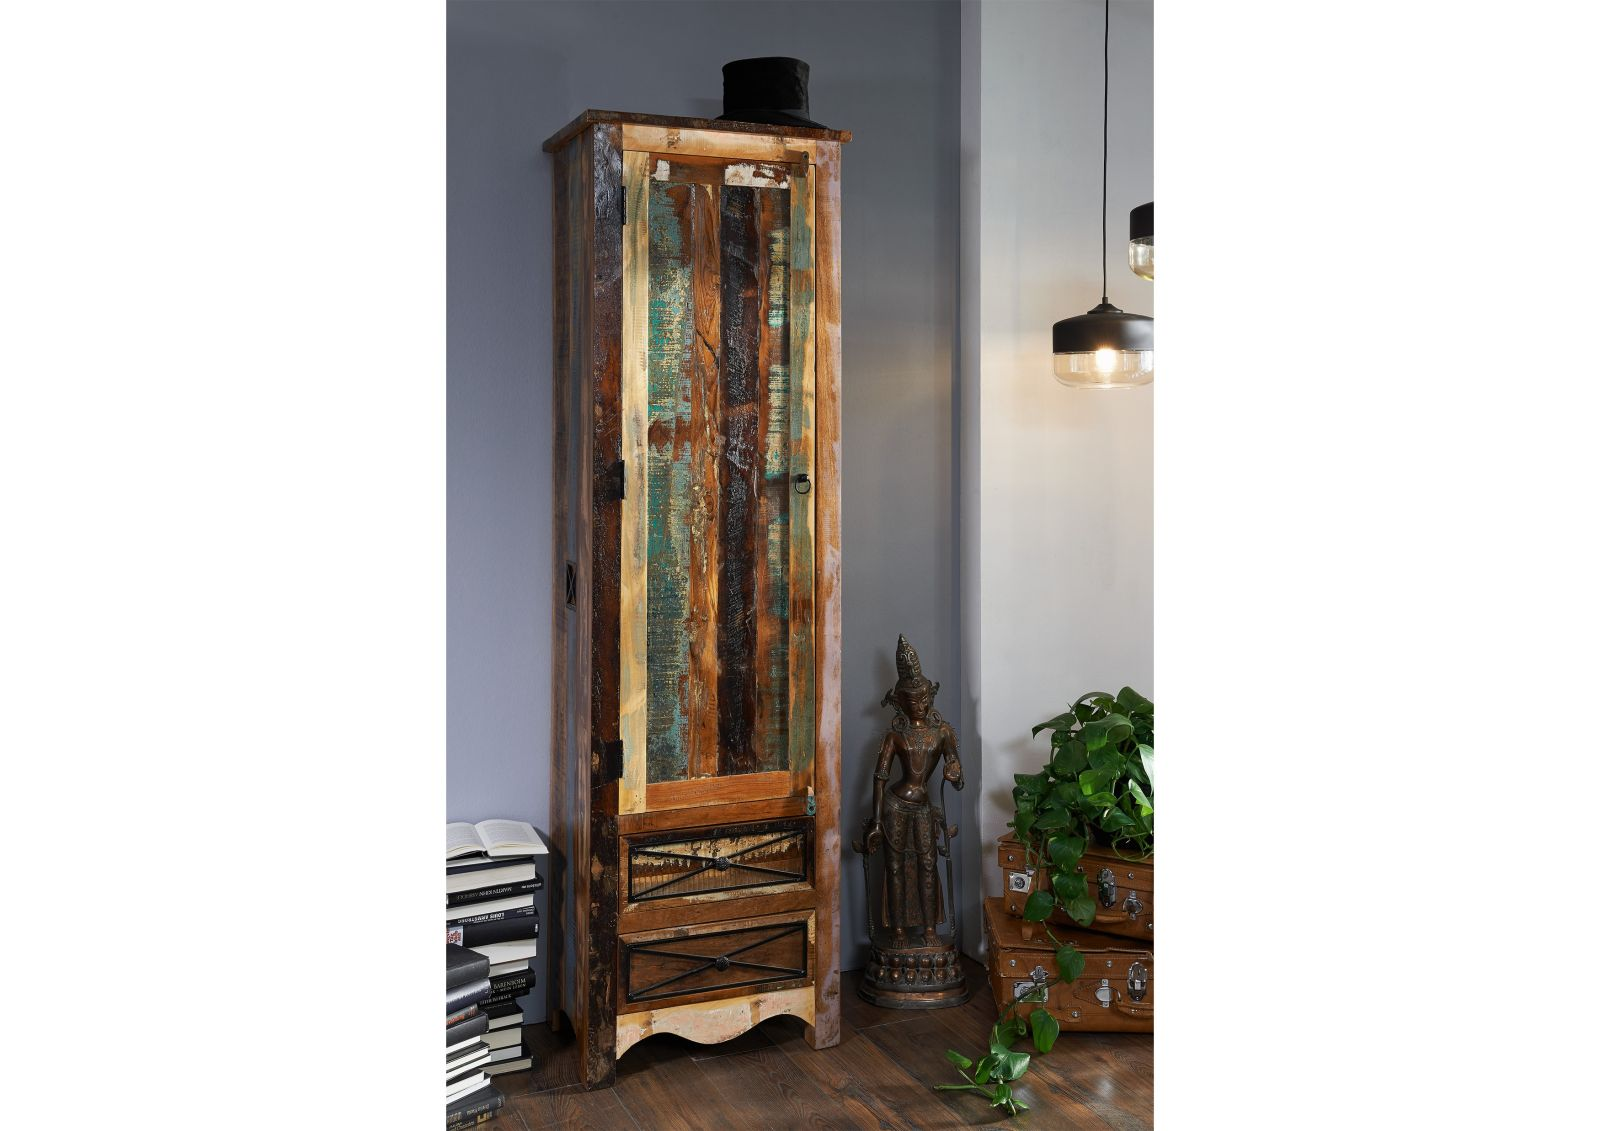 Garderobe nature of spirit altholz 60x40x200 cm vintage for Garderobe natur